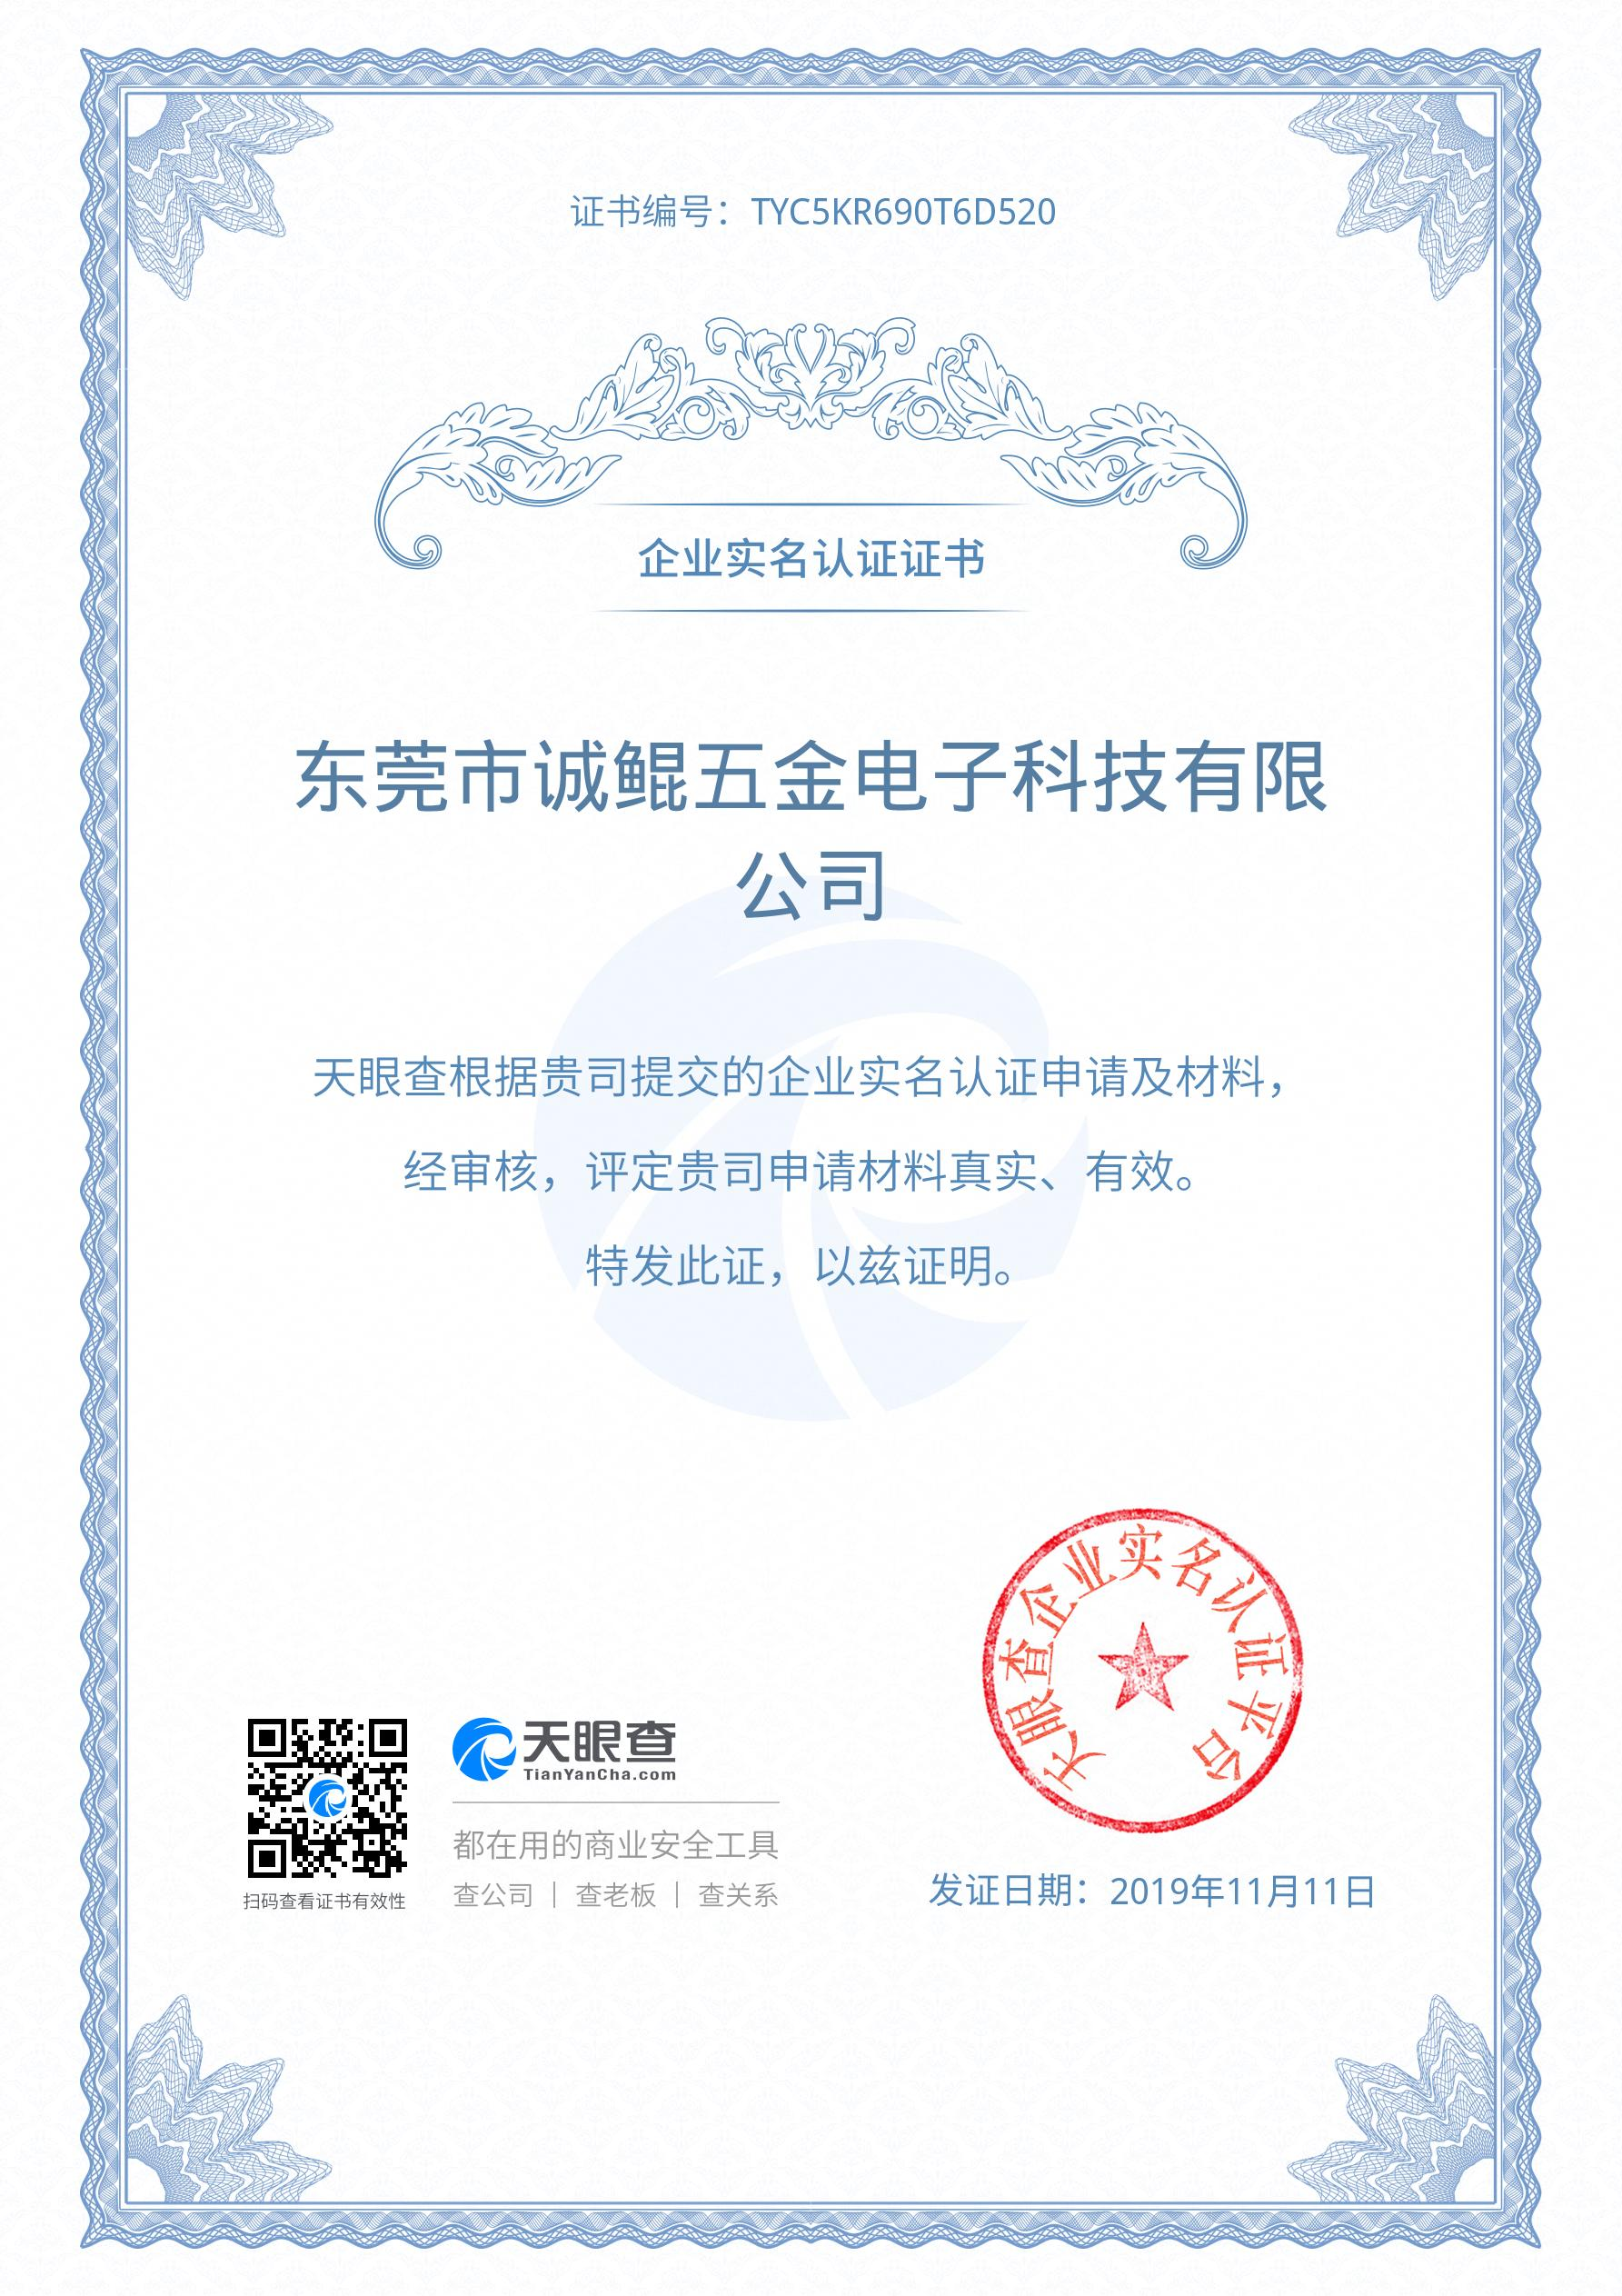 Tianyan check certification